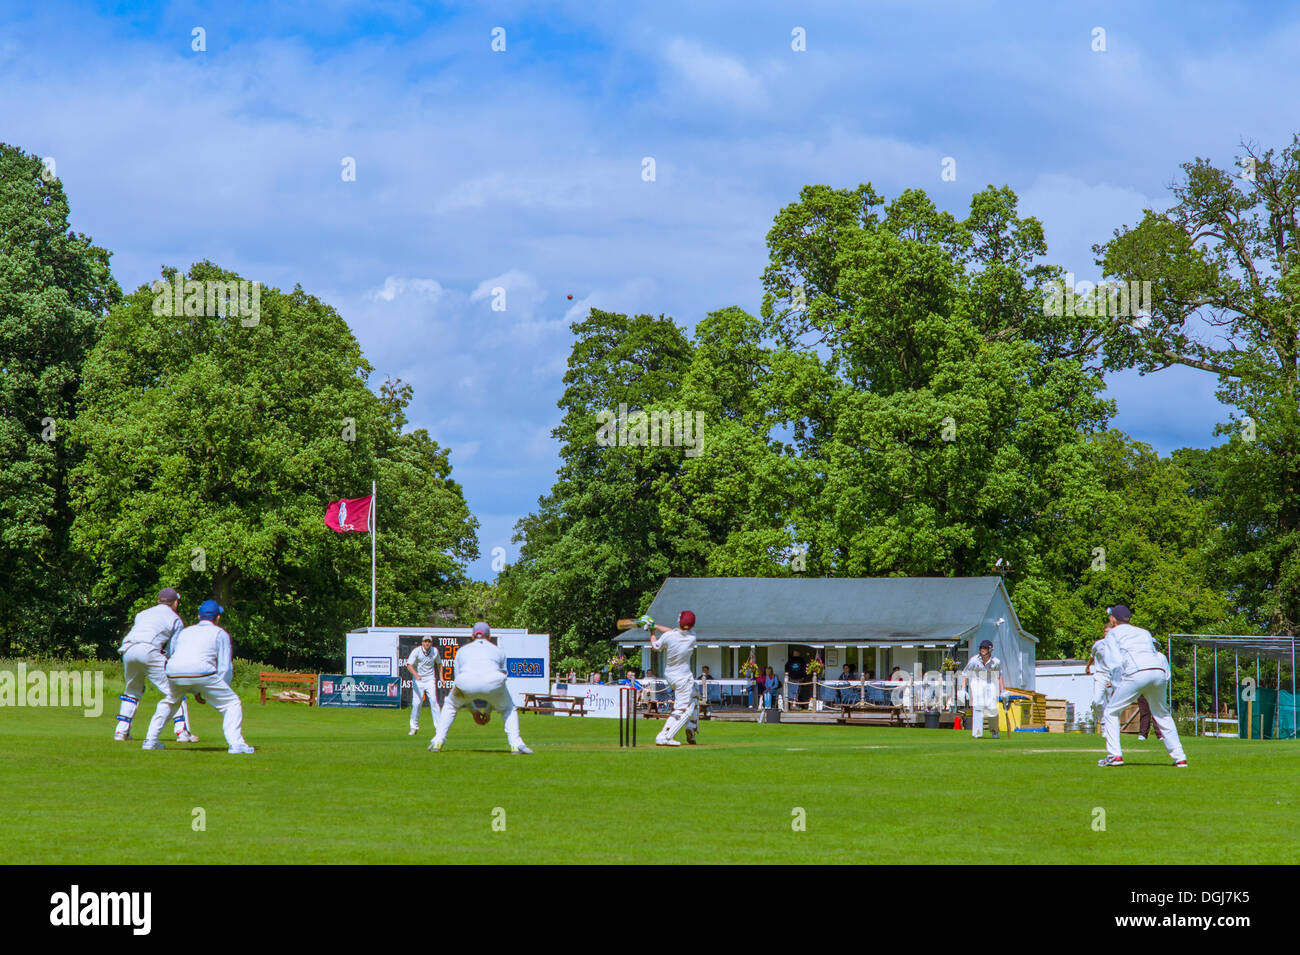 The ball flies high in the air as the batsman tries for the boundary. - Stock Image